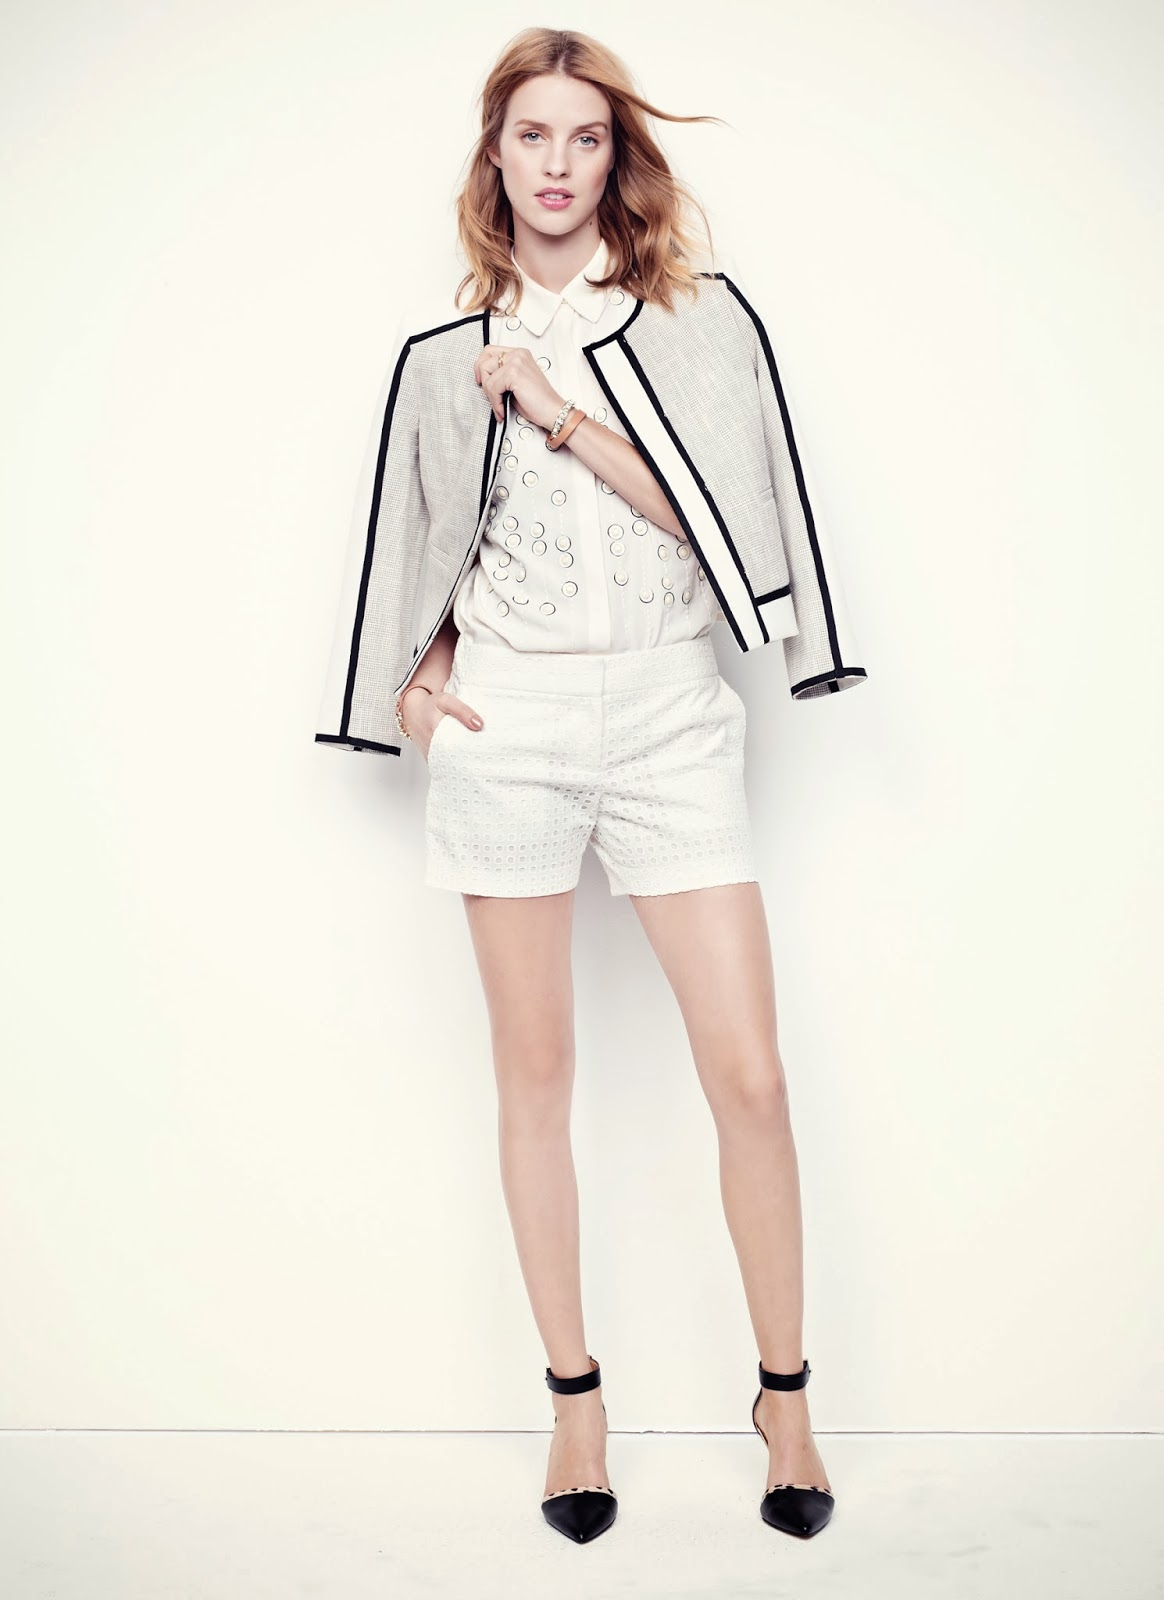 Ann Taylor Spring 2014 Lookbook 7 Style Blog Canadian Fashion And Lifestyle News